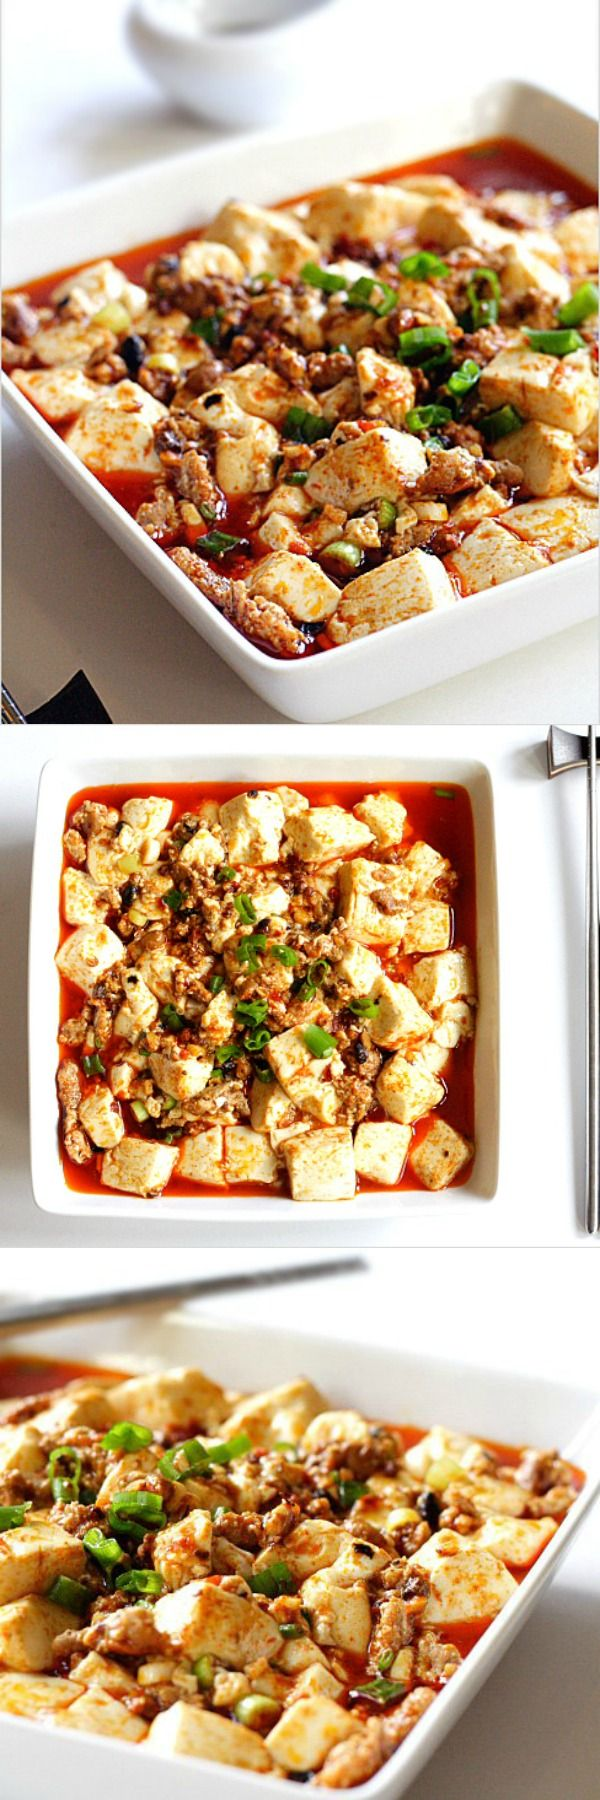 Mapo Tofu - spicy Sichuan tofu with group pork. Try this Chinese tofu dish with this super easy recipe | rasamalaysia.com